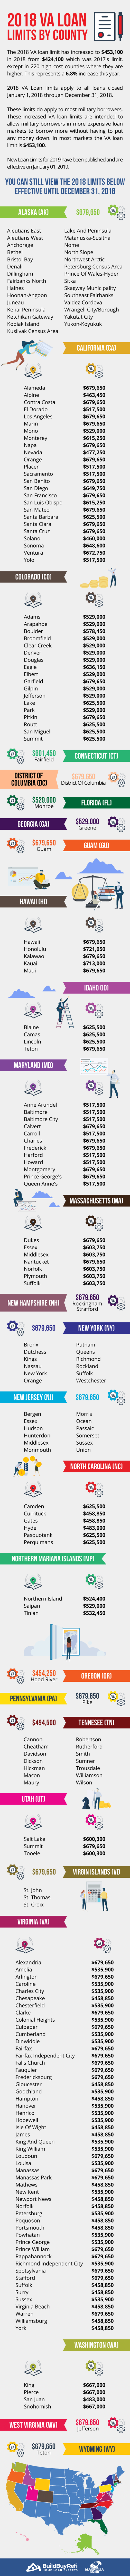 2018 VA LOAN LIMITS BY COUNTY INFO-GRAPH FROM BUILDBUYREFI.COM AND COMMUNITY 1ST NATIONAL BANK.